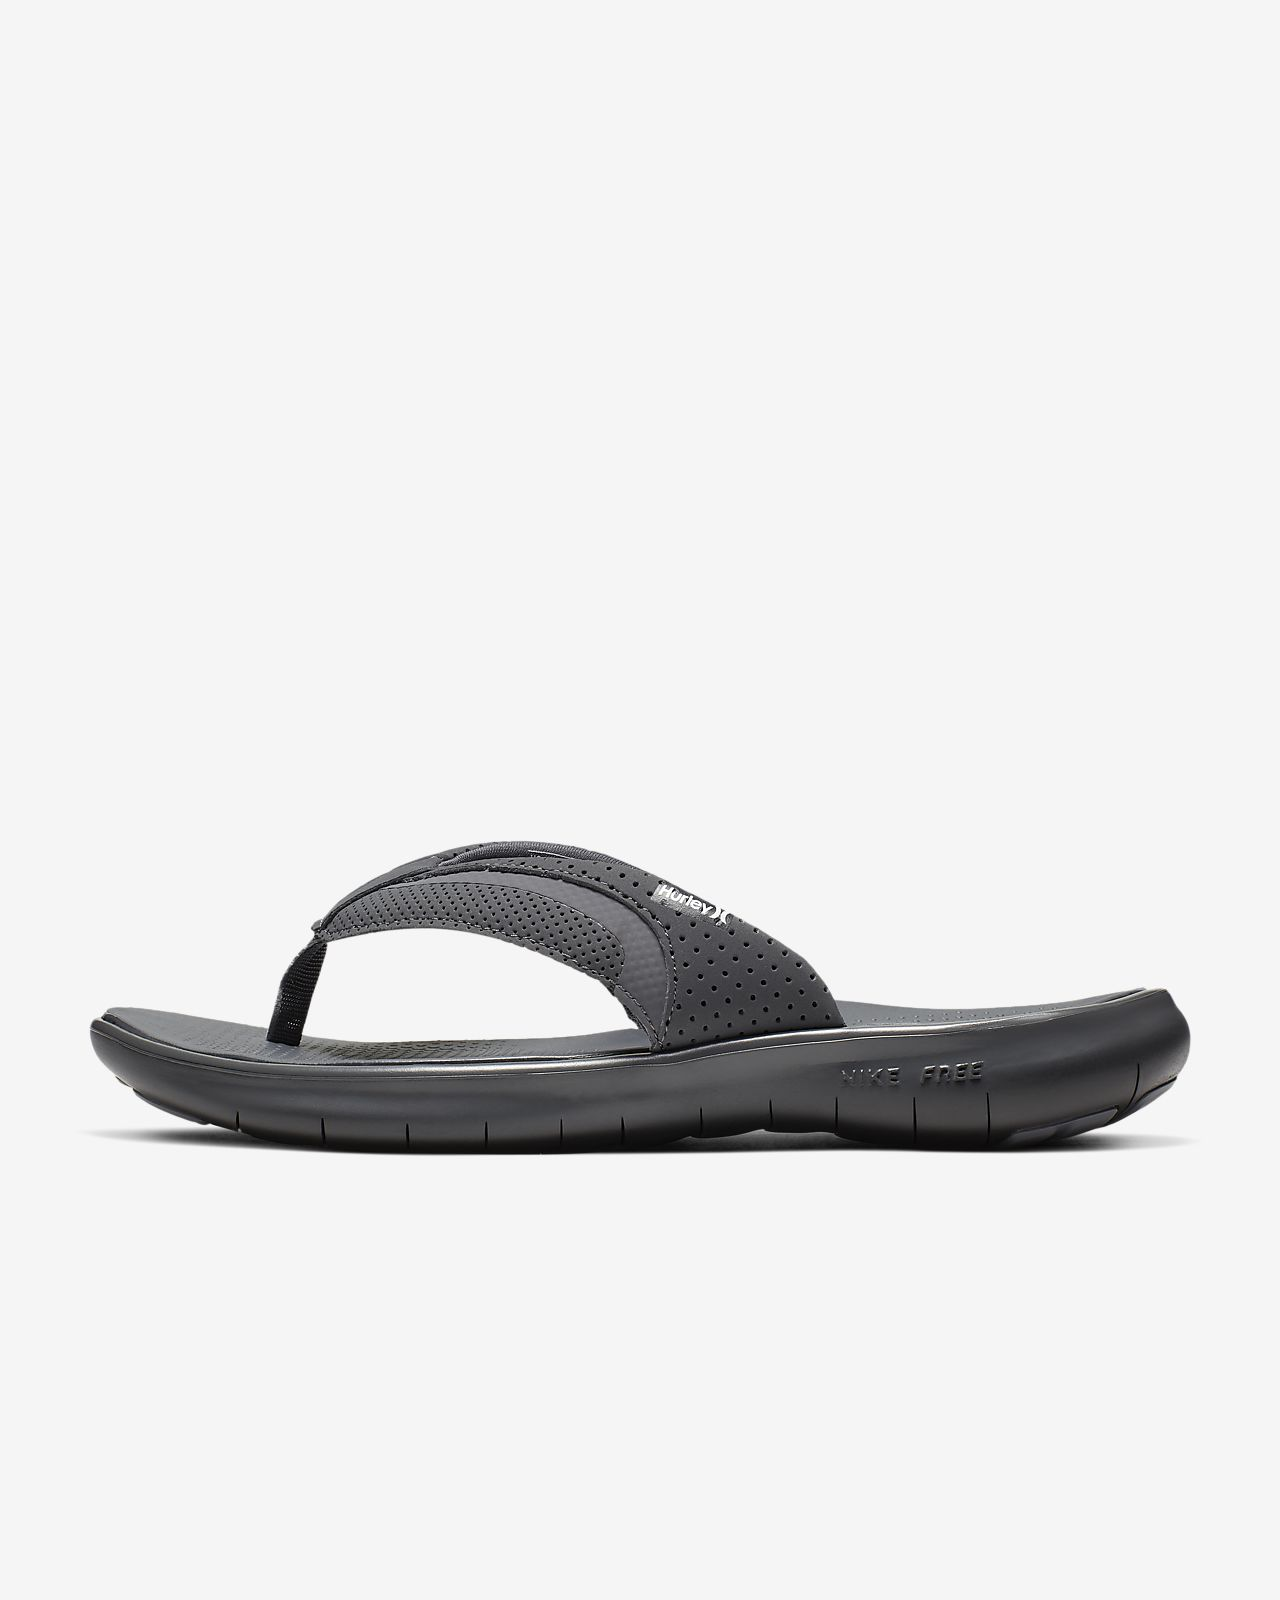 fe7789bc2 Hurley Phantom Free Motion Men s Sandal. Nike.com NZ